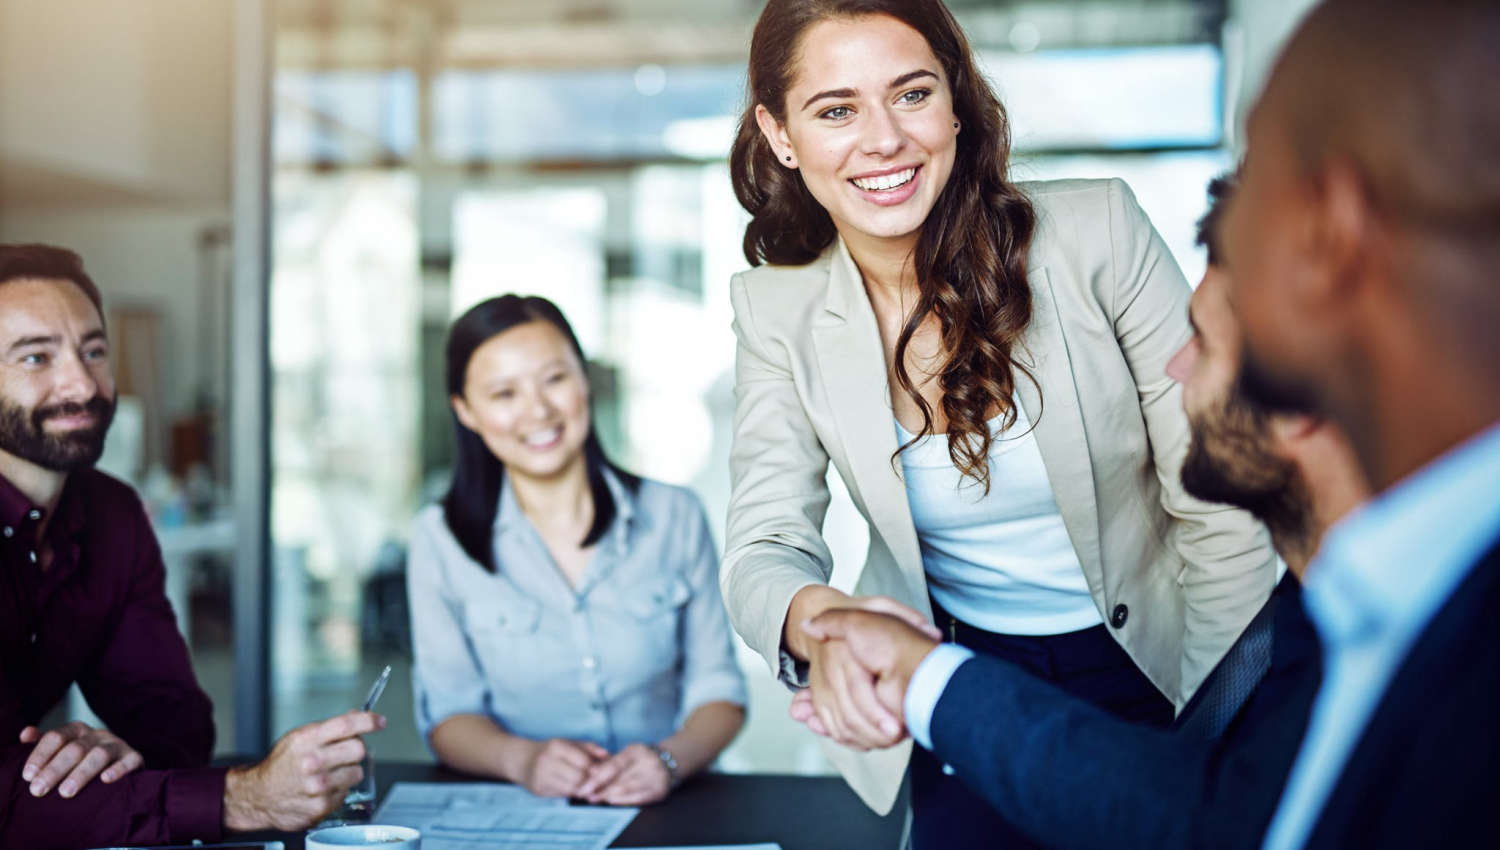 6 Tips For Impressing HR Specialist In A Job Interview